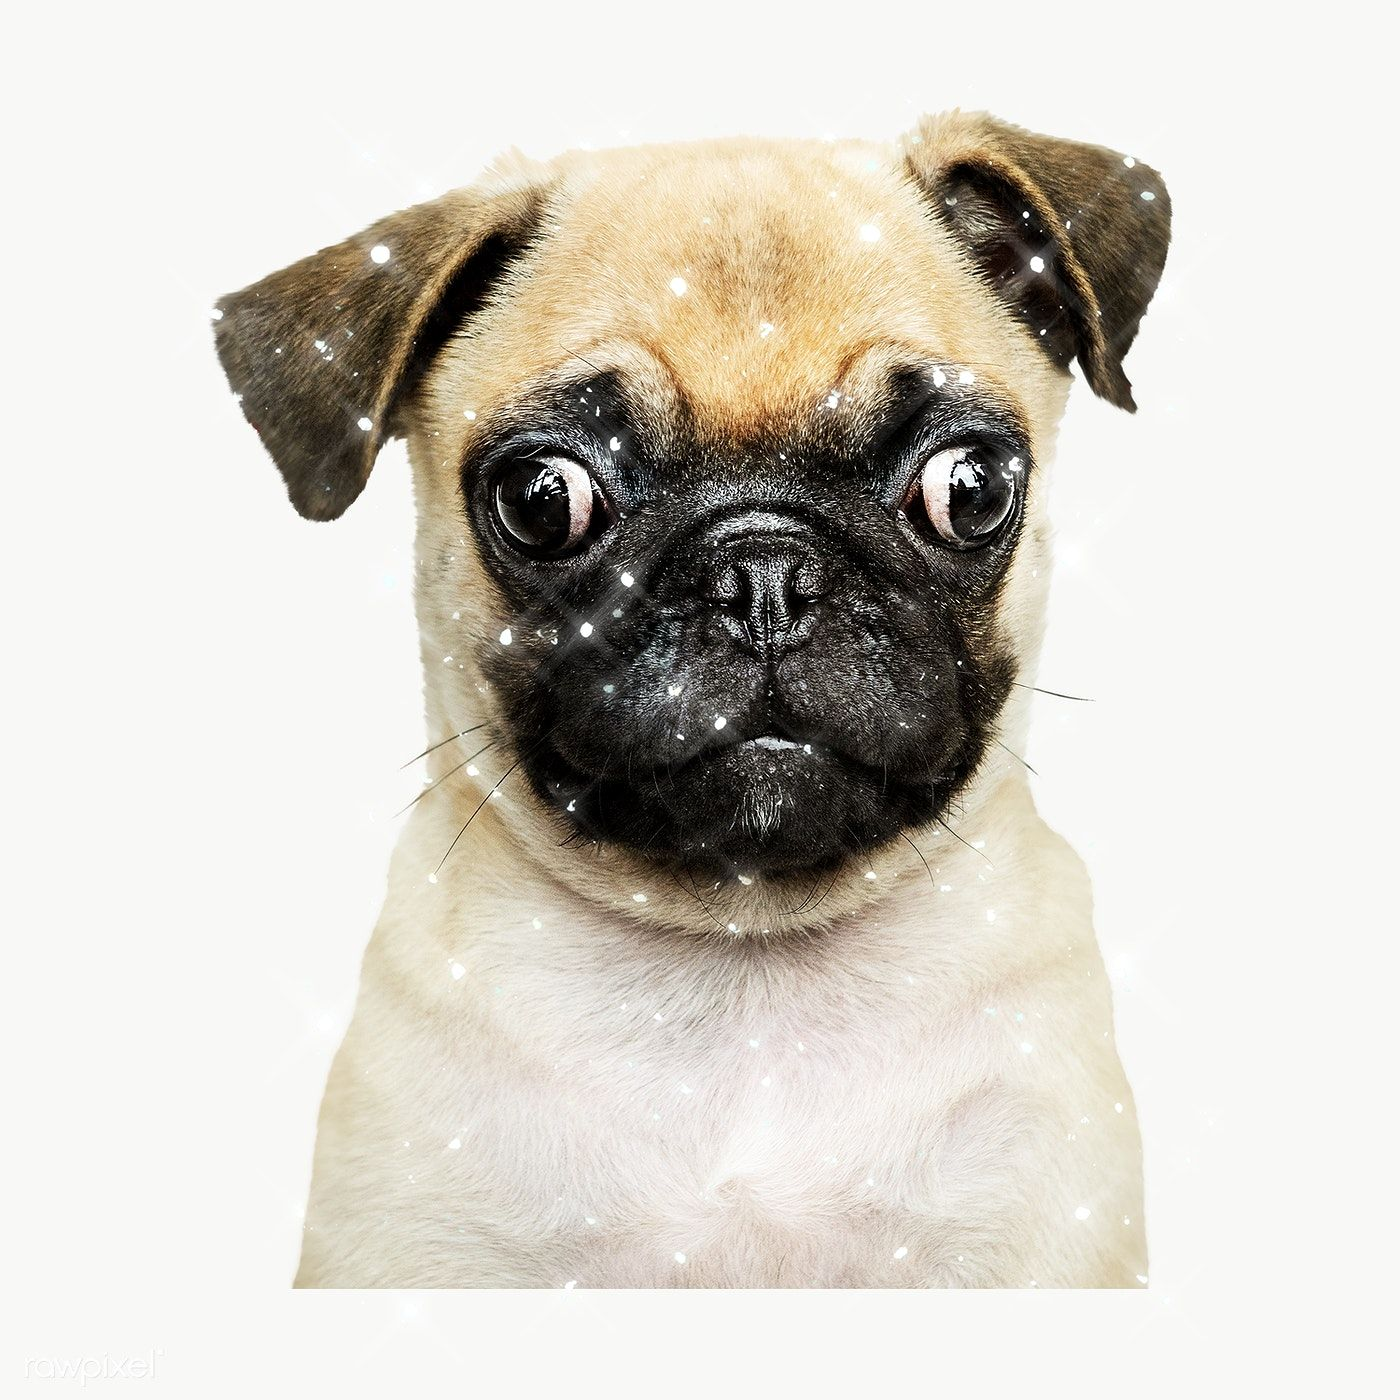 Sparkling Pug Puppy Design Element Free Image By Rawpixel Com Manotang Pug Puppy Pugs Puppies